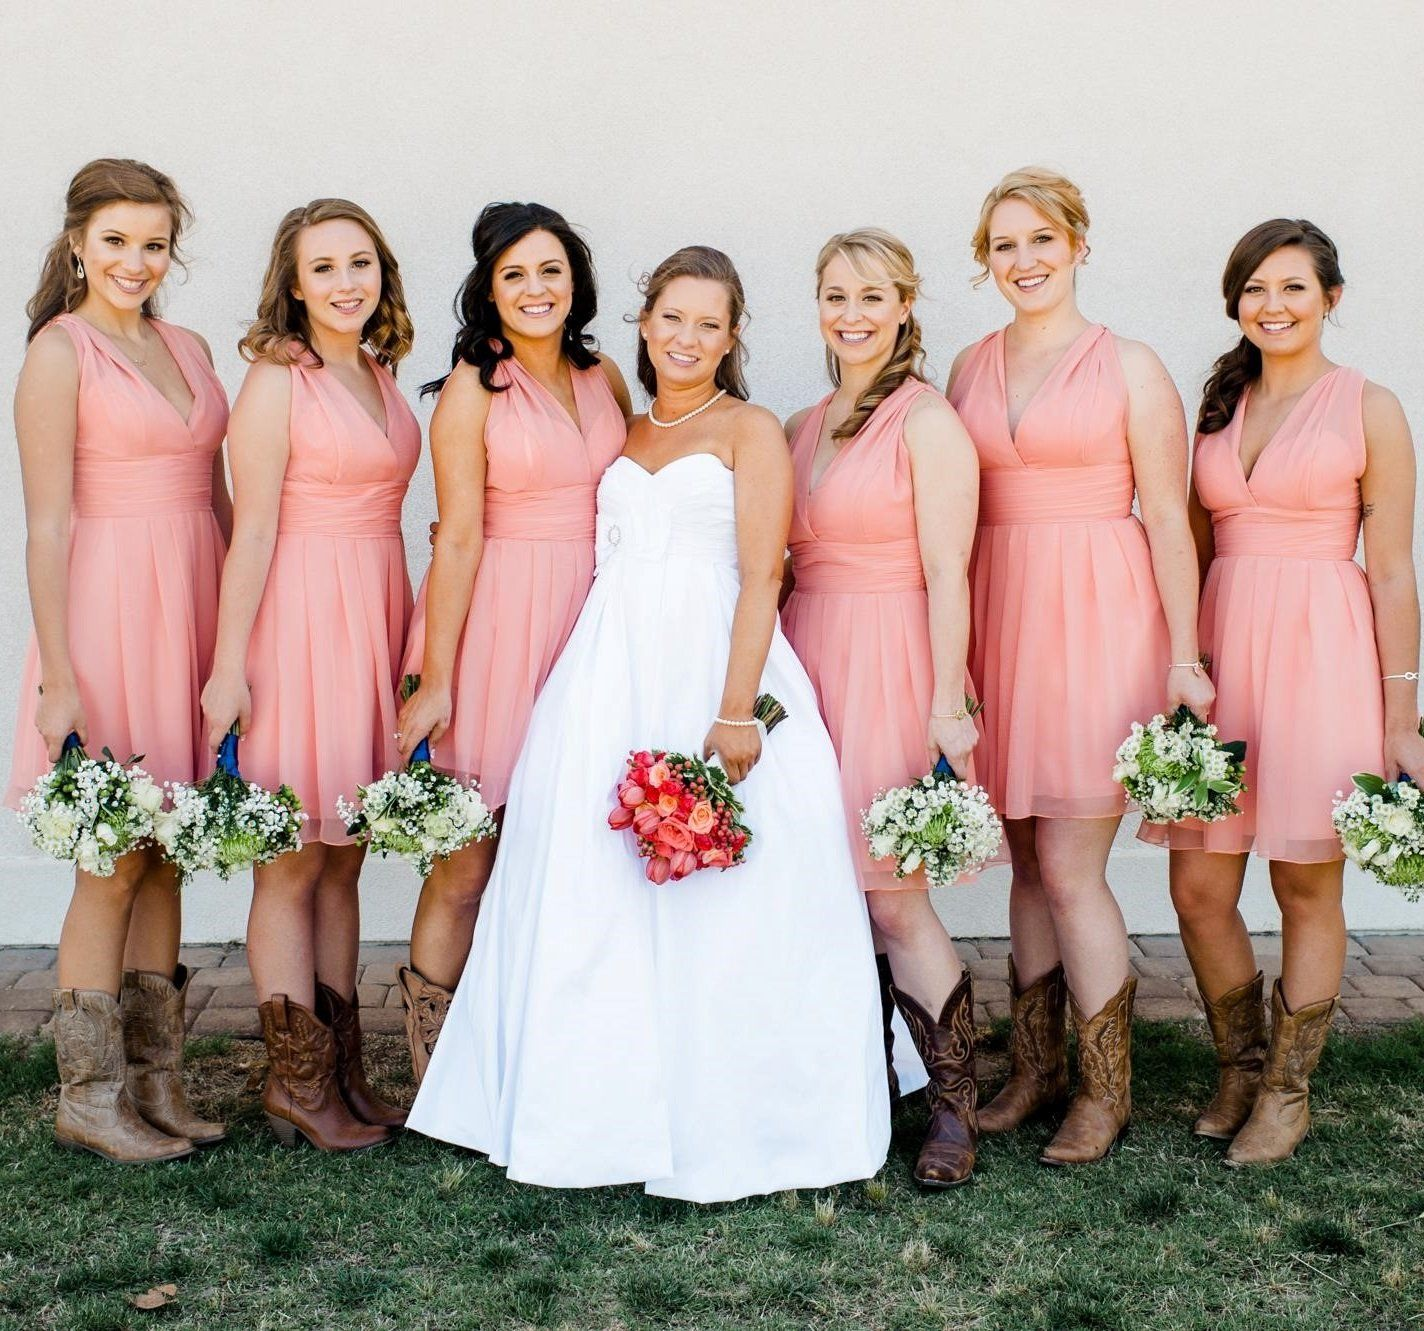 Country Westen Short Coral Bridesmaid Dresses Rockabilly Bridesmaid Dresses With Boots 20082011 Summer Bridesmaid Dresses Pink Bridesmaid Dresses Bridesmaid Dresses Short Coral [ 1331 x 1424 Pixel ]